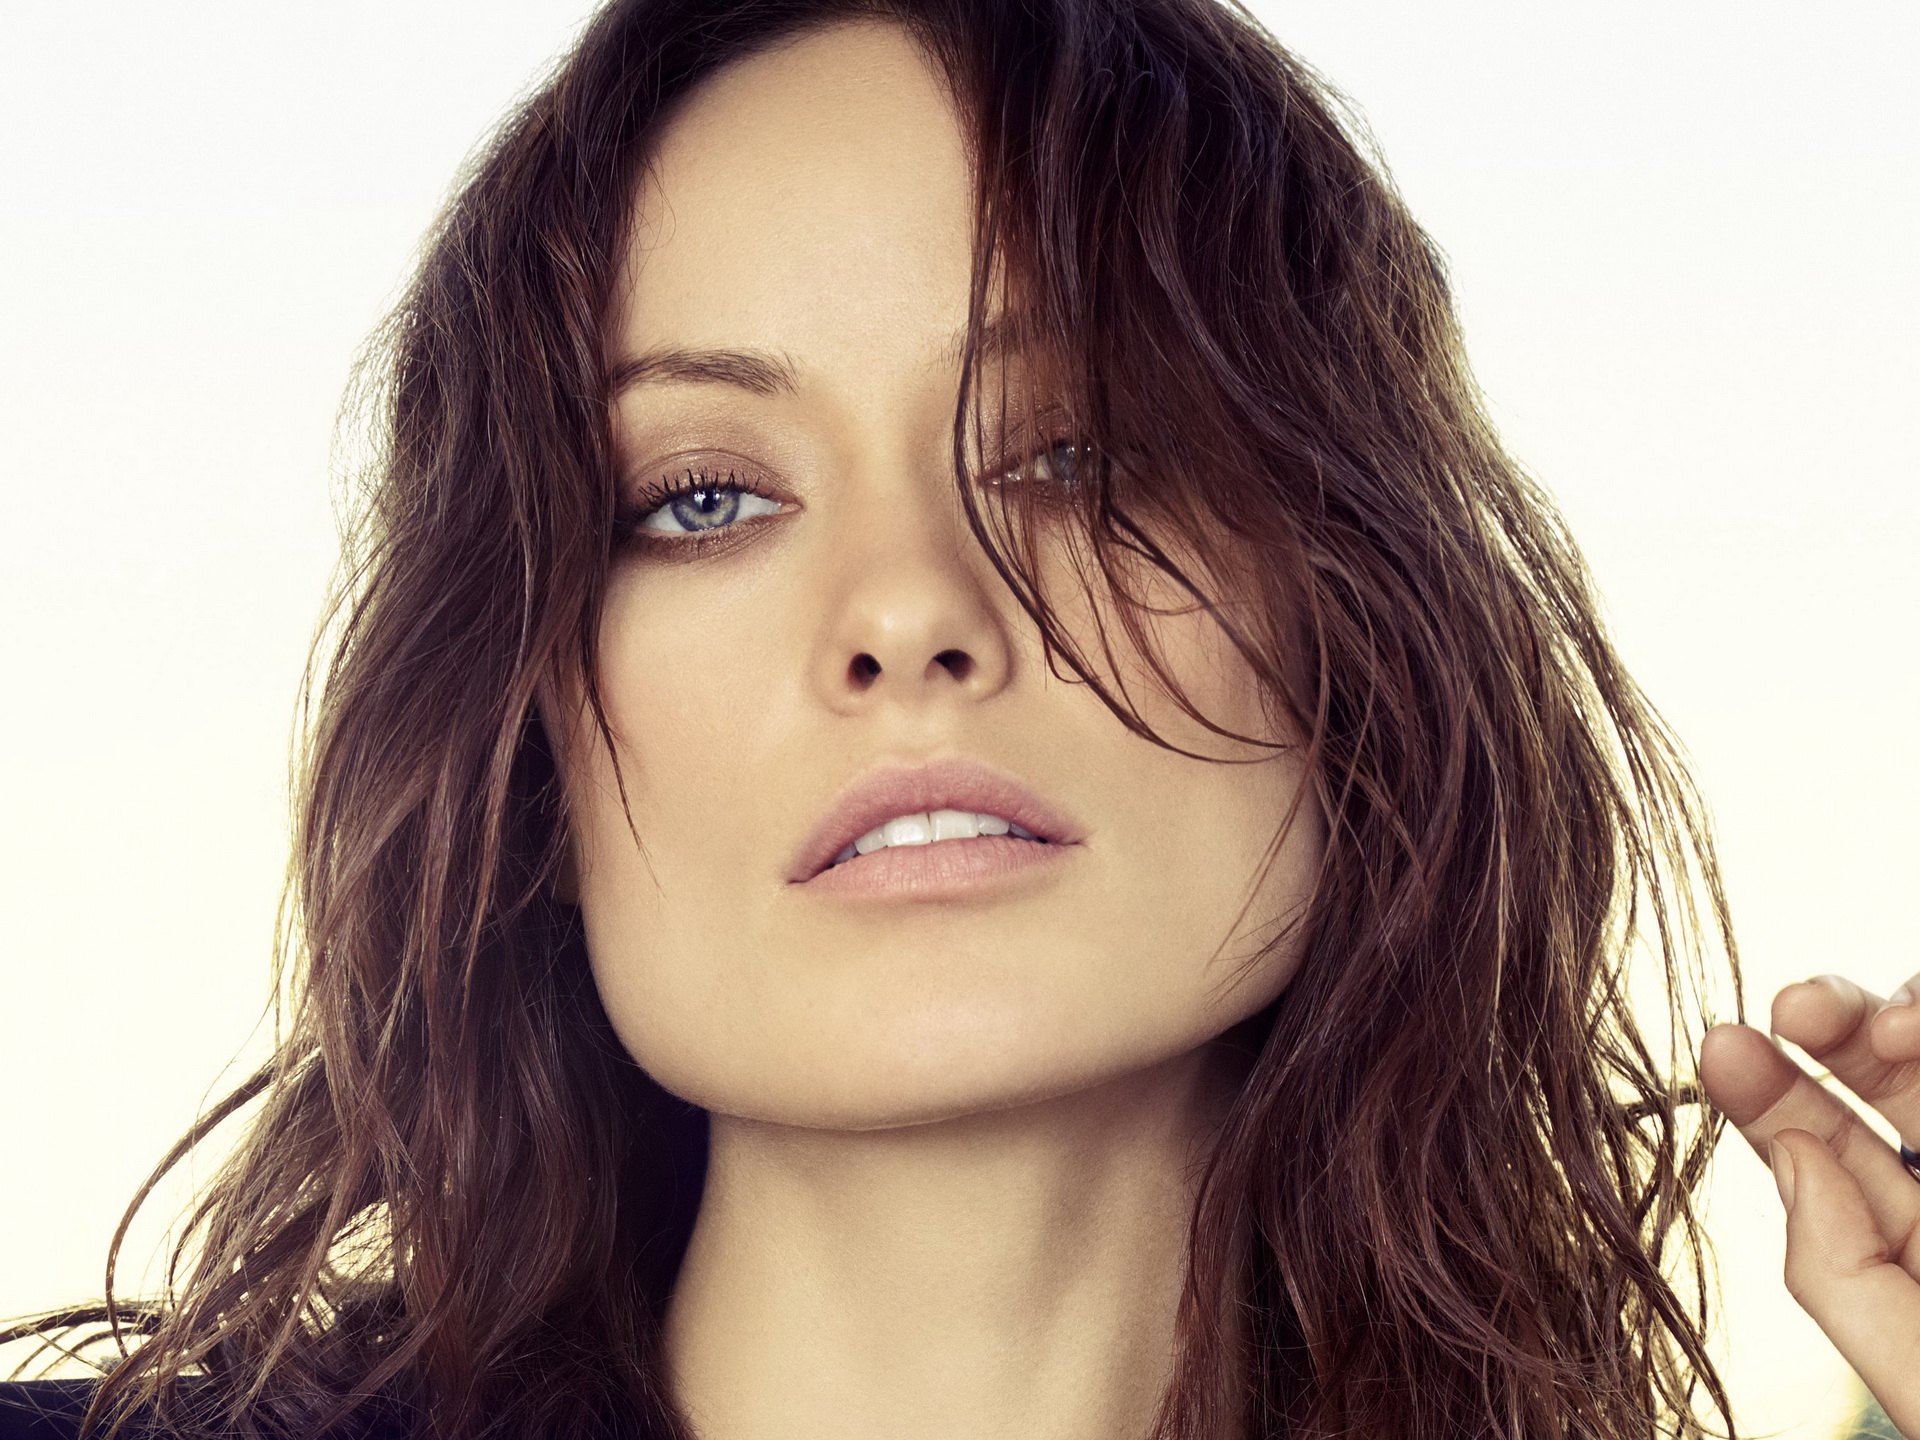 Our #WCW or Woman Crush Wednesday this week goes to the beautiful and talented Olivia Wilde. This was a hard one as she was in a tie with Mila Kunis but ...